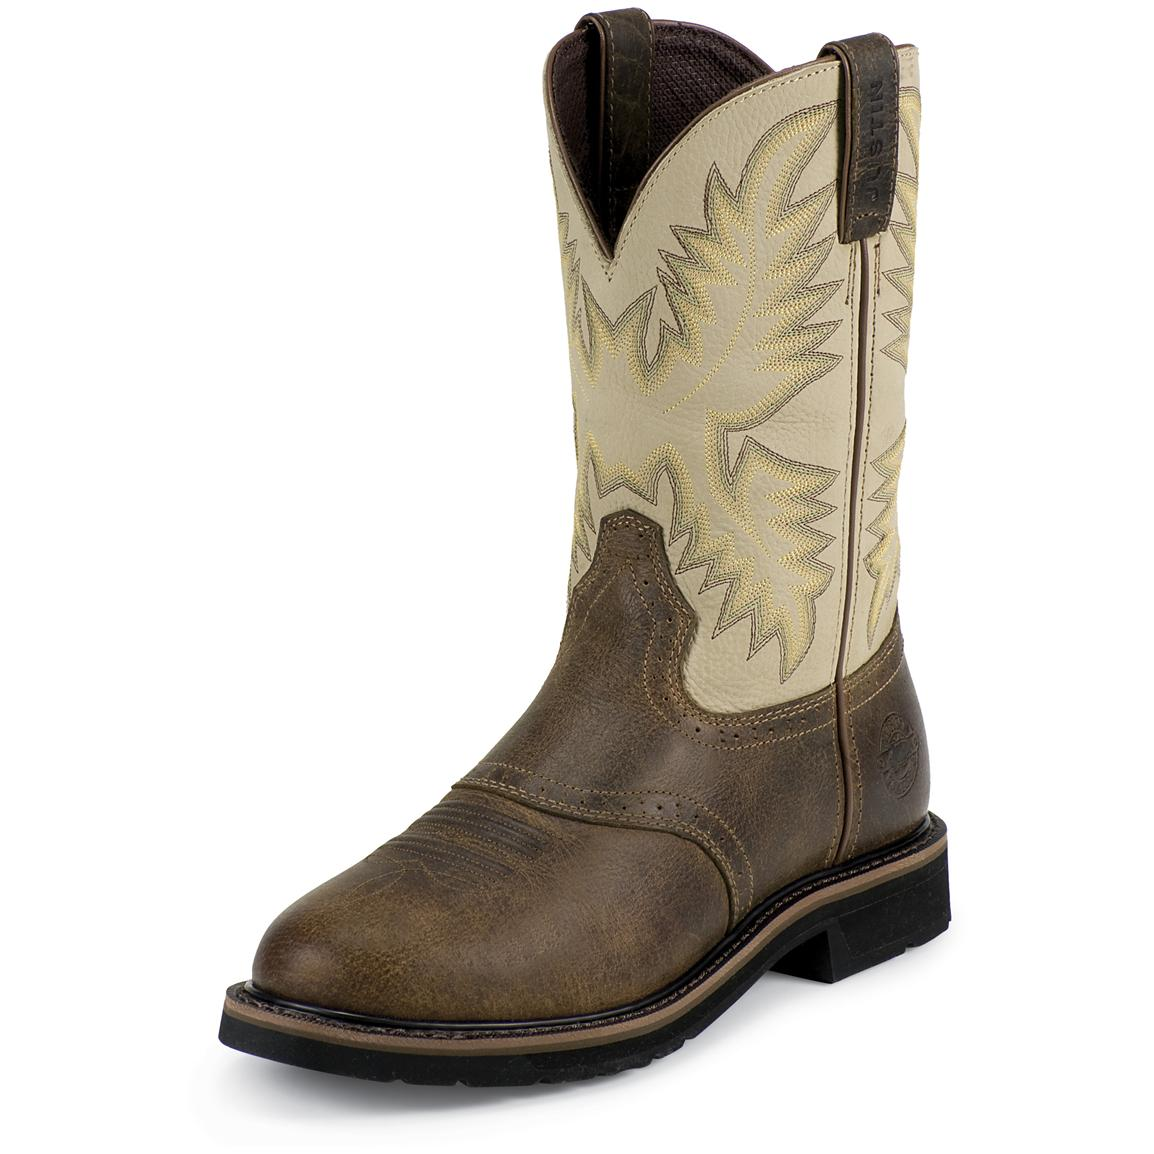 Men's Justin® 11 inch Stampede Western Boots, Waxy Brown